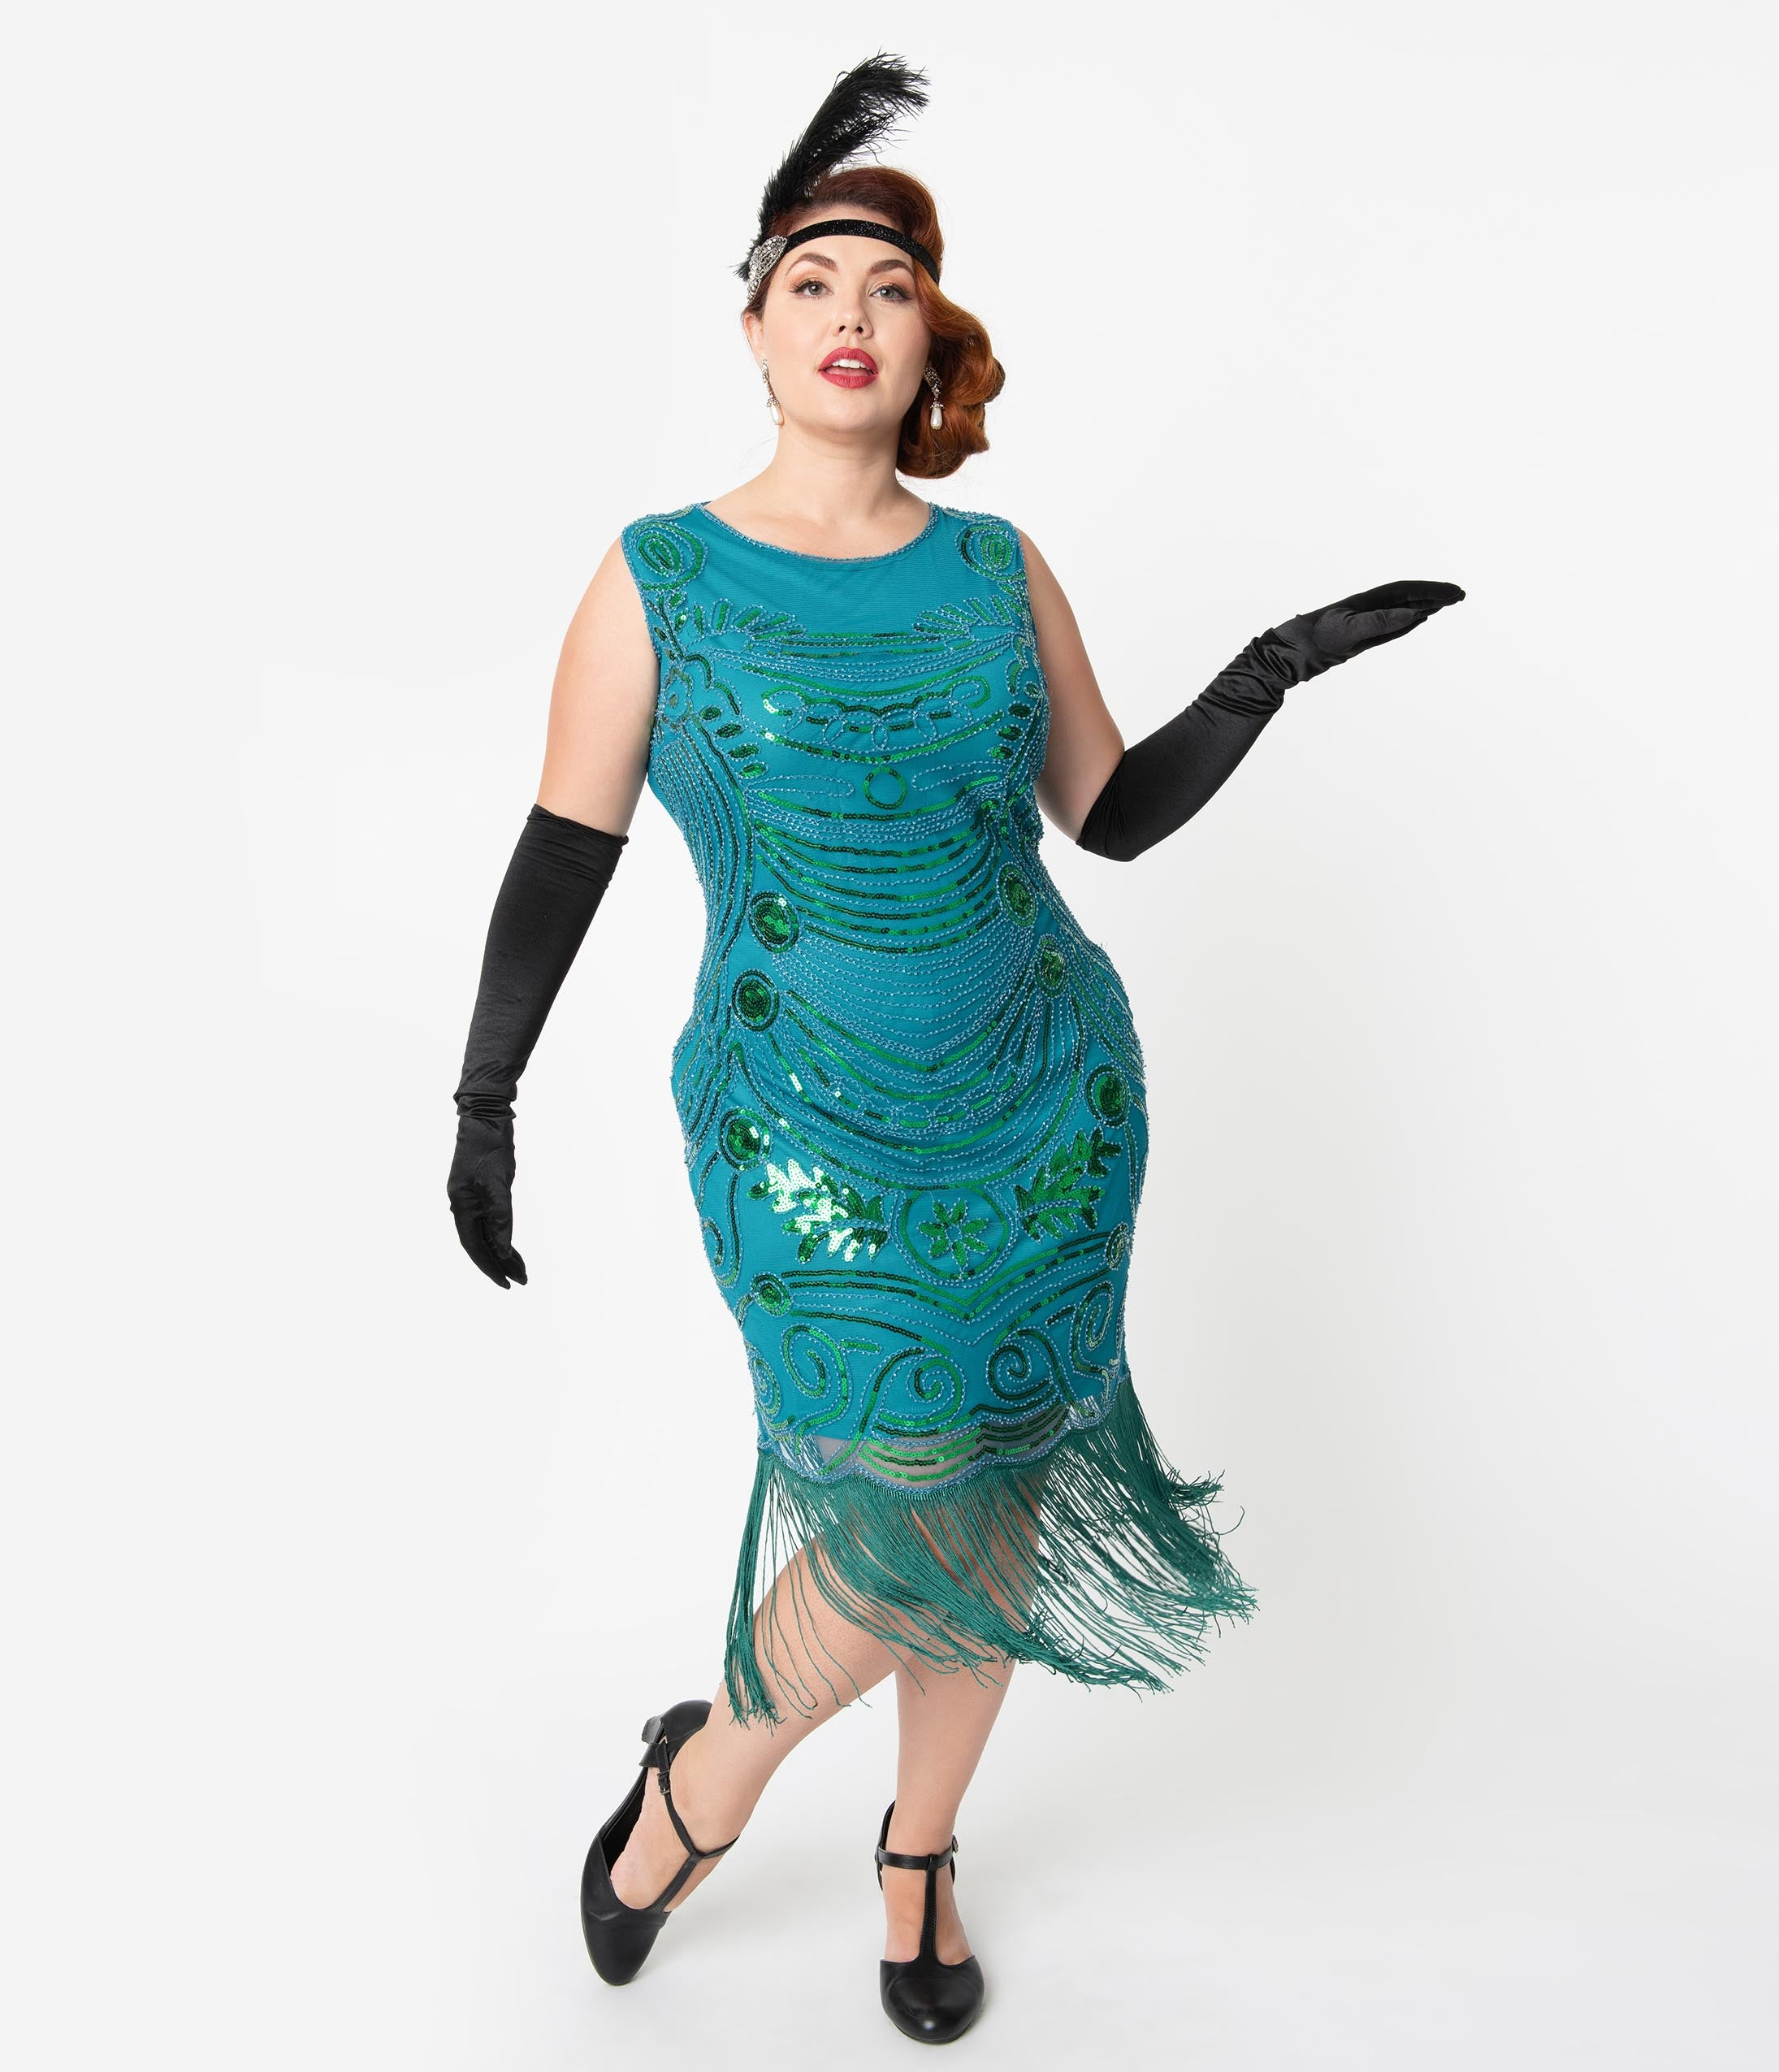 1920s Costumes: Flapper, Great Gatsby, Gangster Girl Unique Vintage Plus Size 1920S Teal Beaded Yvette Fringe Cocktail Dress $98.00 AT vintagedancer.com